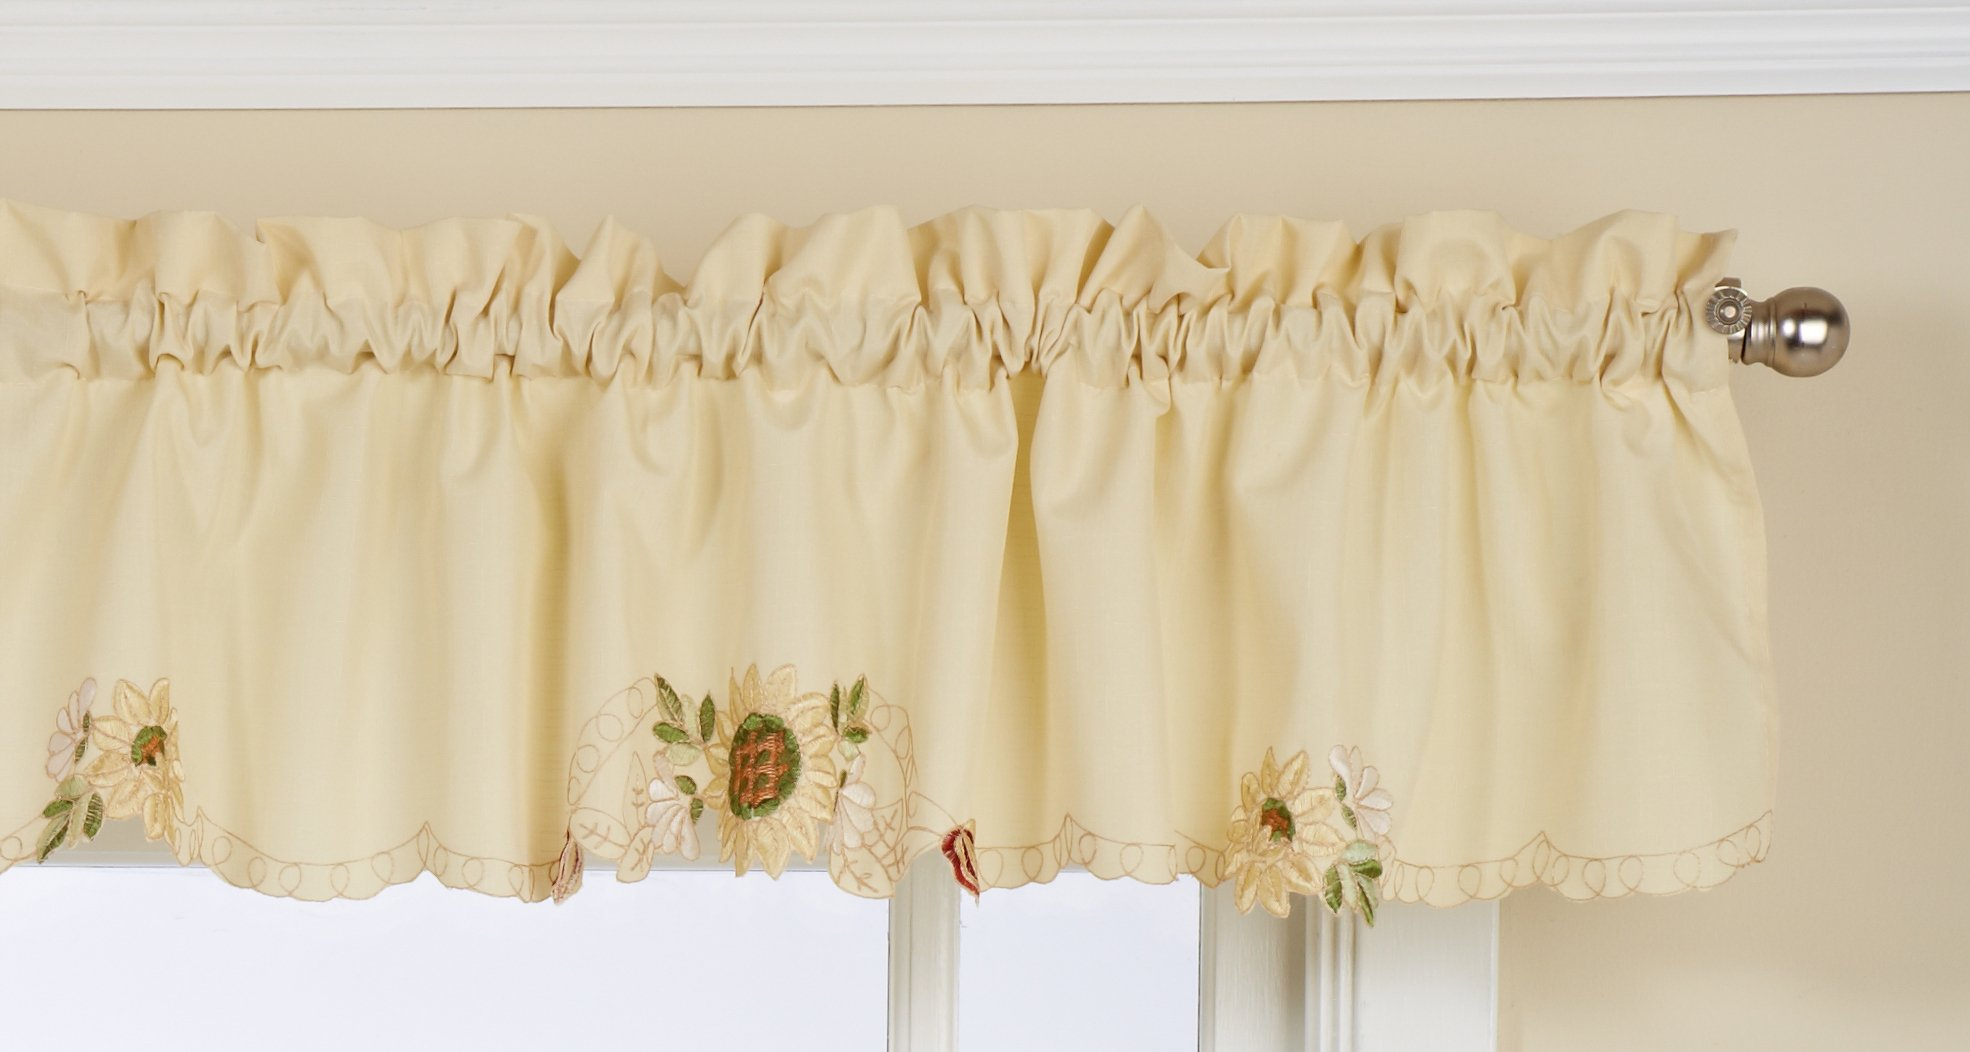 LORRAINE HOME FASHIONS Sunflower Tailored Valance, 60 by 12-Inch, Multi-Color - Measures 60 x 12-inch Fabric Content: 100% Polyester Machine wash, warm water, gentle cycle; Do not bleach; Line dry; Warm iron if necessary - living-room-soft-furnishings, living-room, draperies-curtains-shades - 71UyesEQqxL -